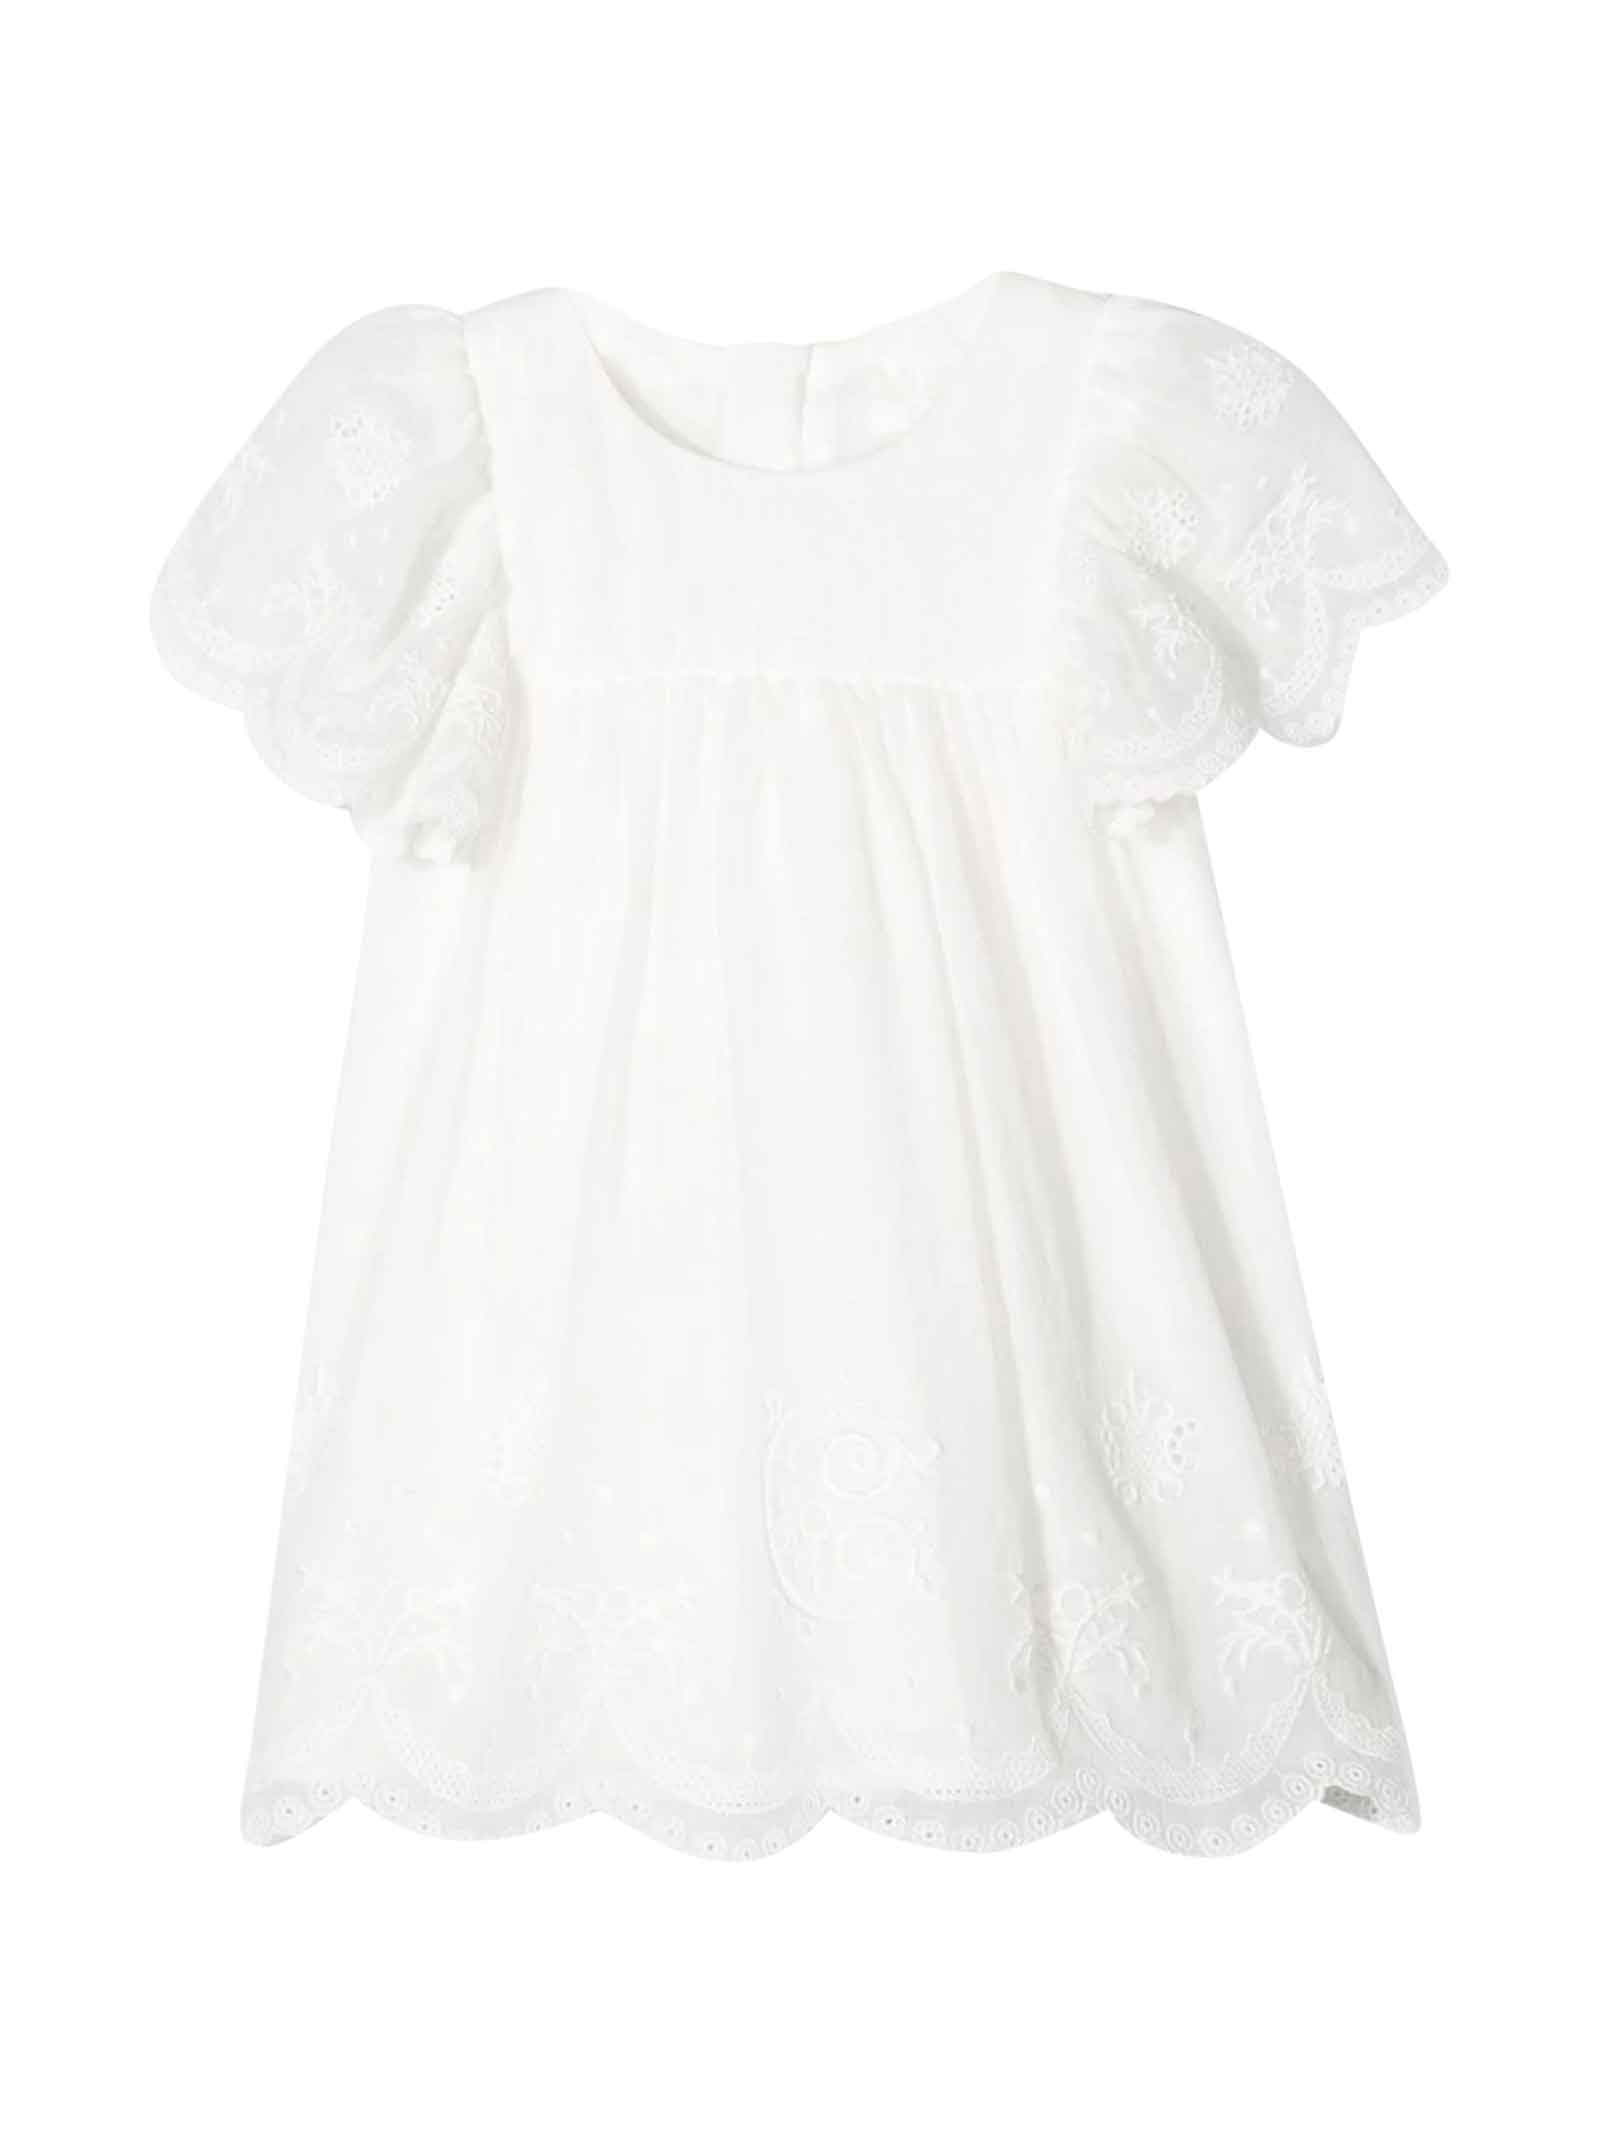 Buy Chloé White Dress With Embroidery Chloé Kids online, shop Chloé with free shipping